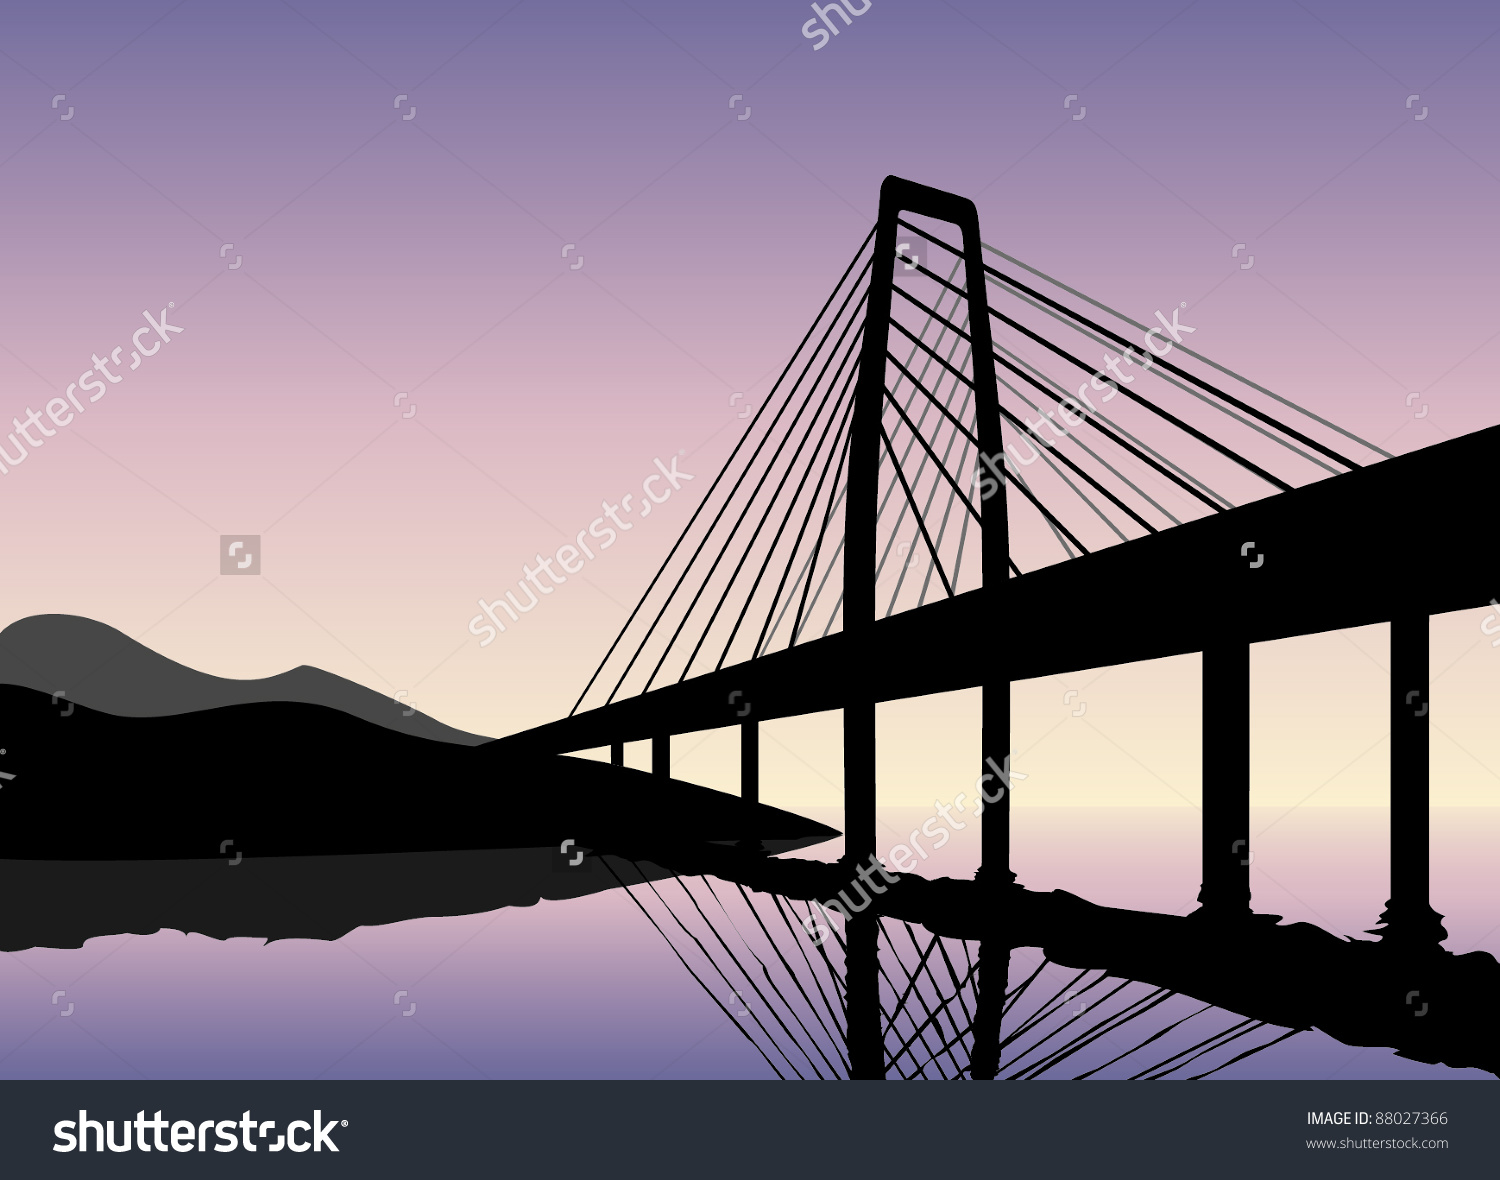 Bridge Silhouette Front Sunset Vector Image Stock Vector 88027366.